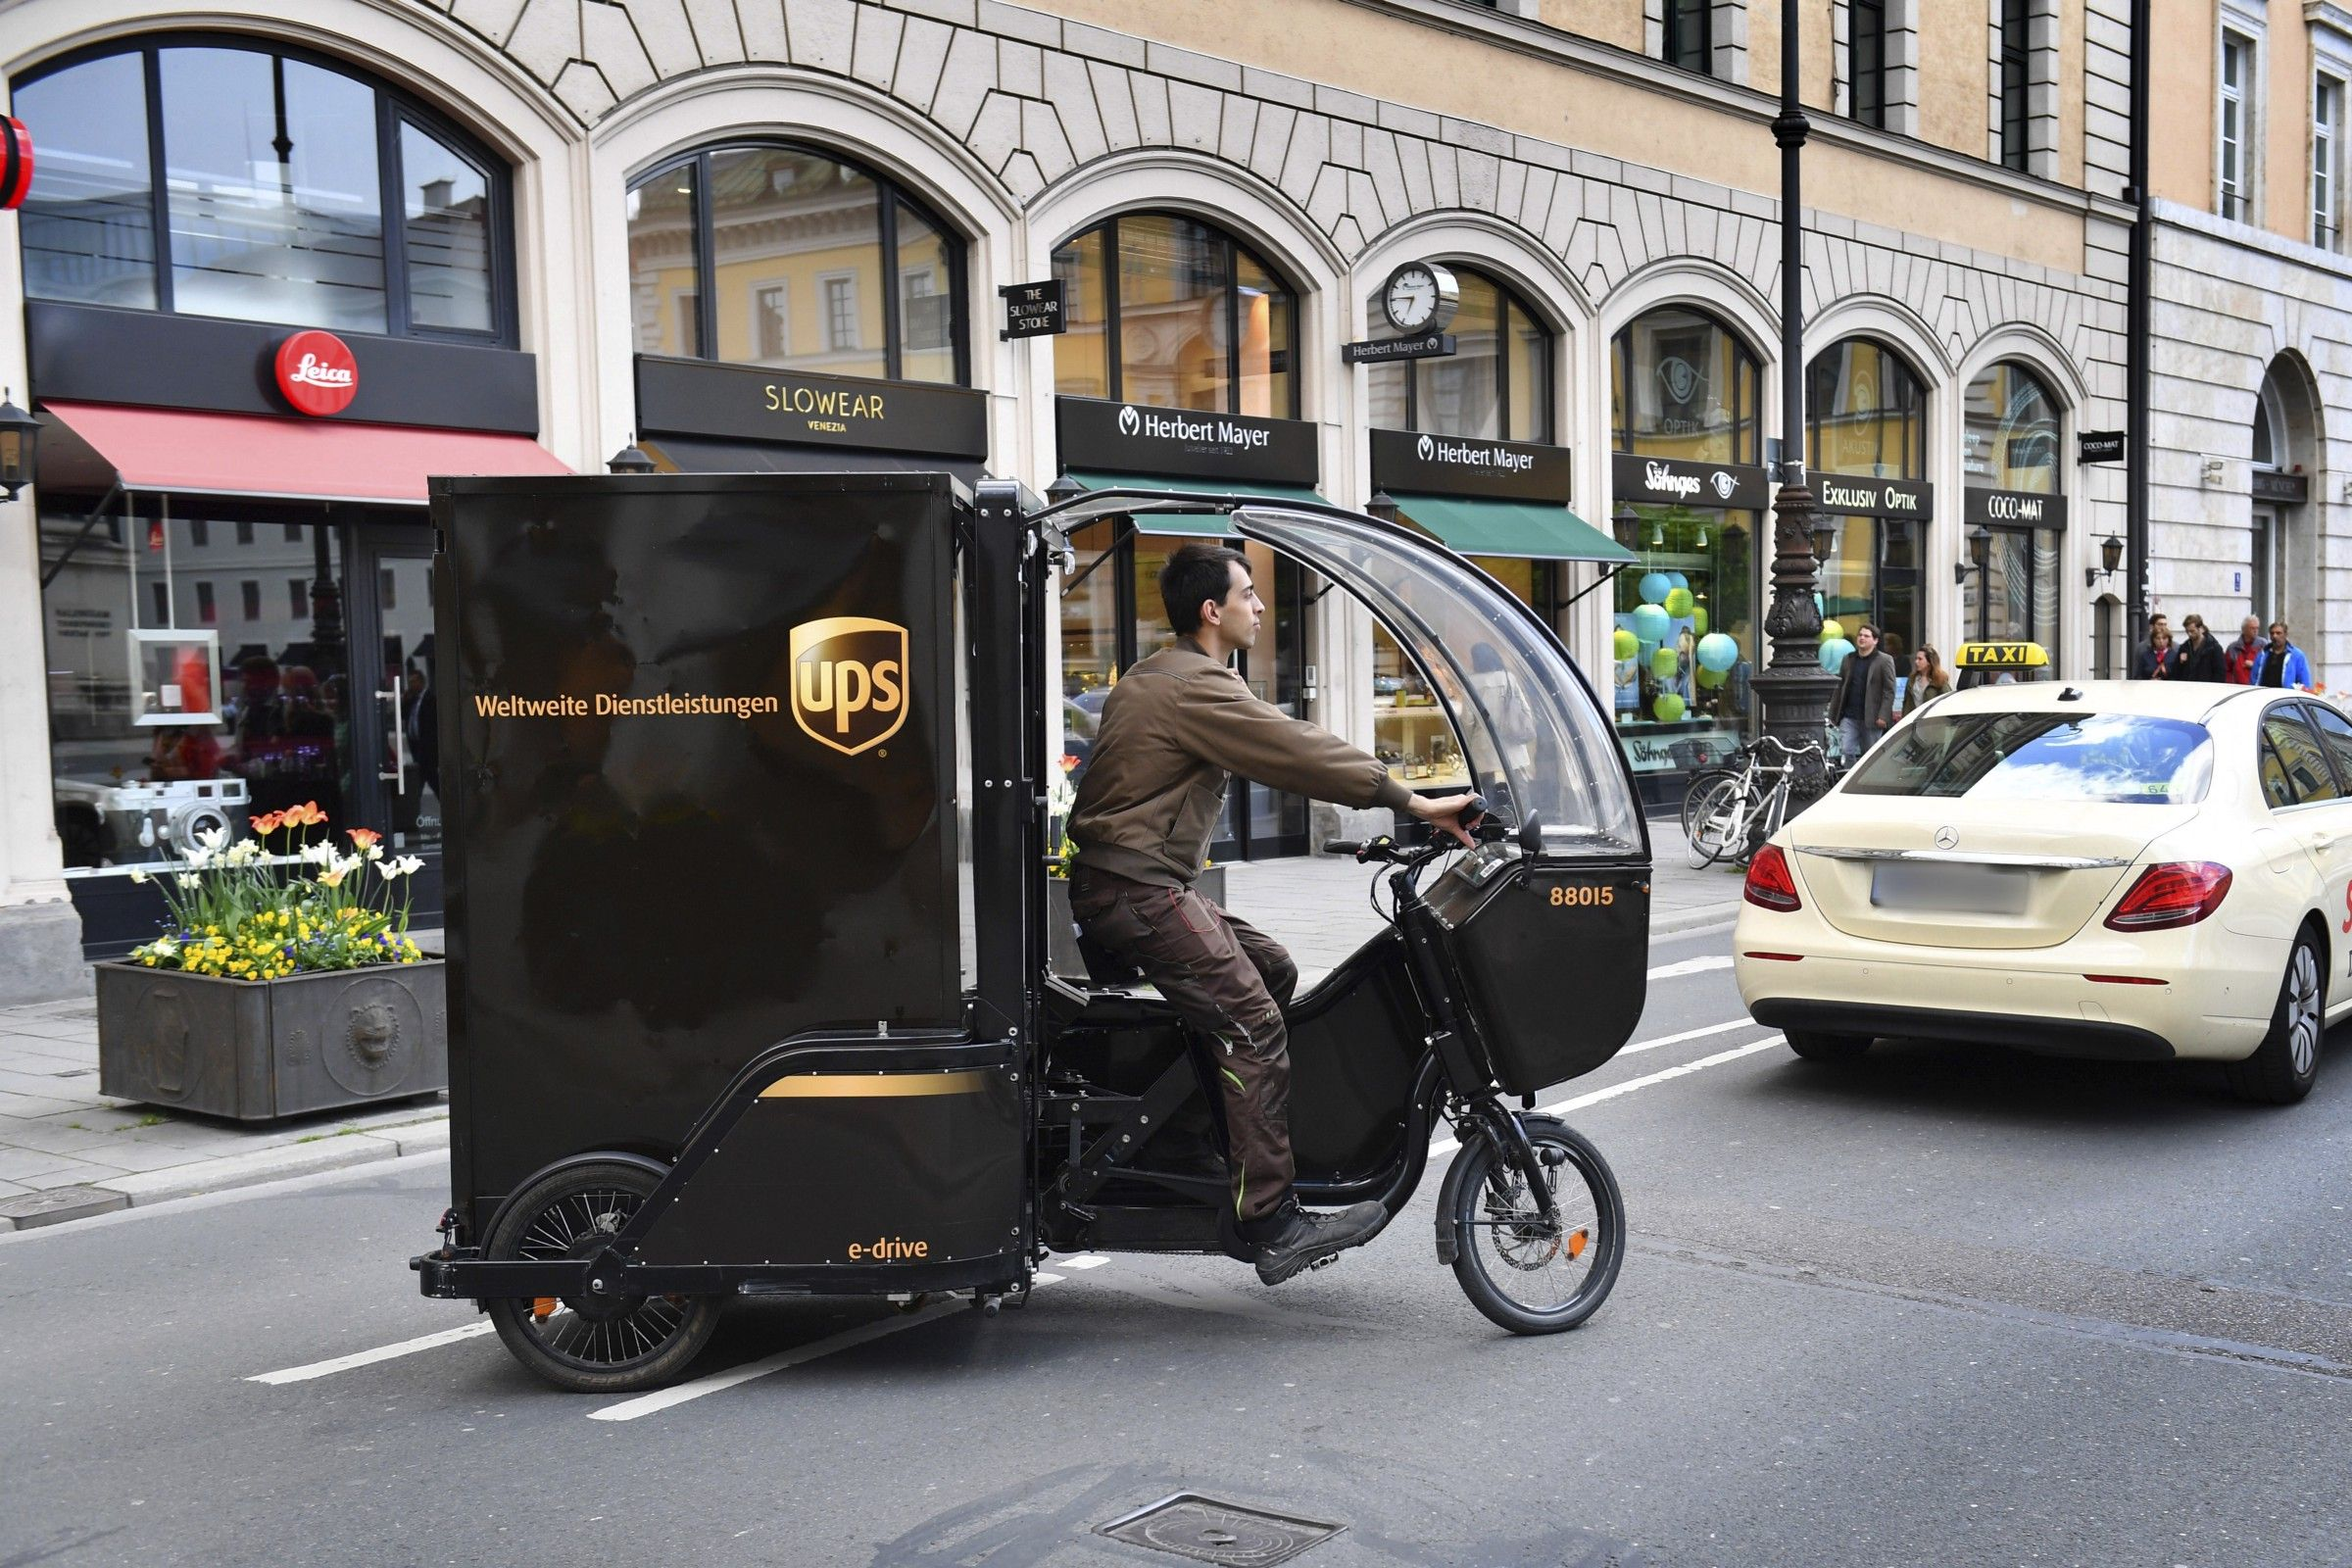 A picture of a UPS delivery bicycle.